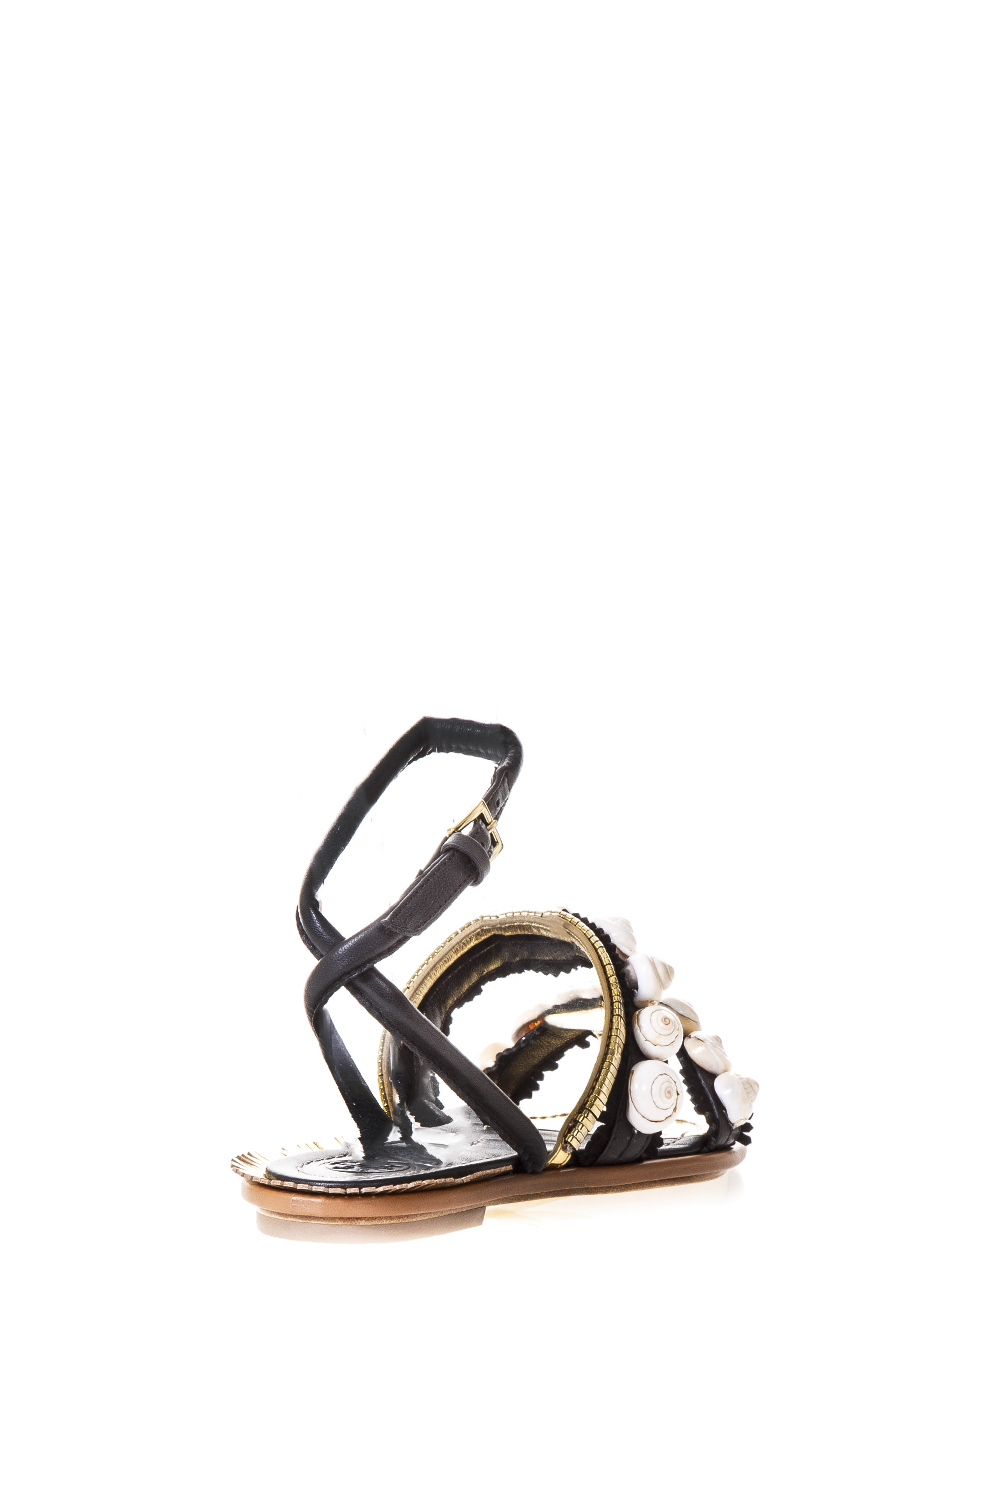 d2dfb5345688a4 SINCLAIR EMBELLISHED LEATHER FLATS SS 2017 - TORY BURCH - Boutique ...